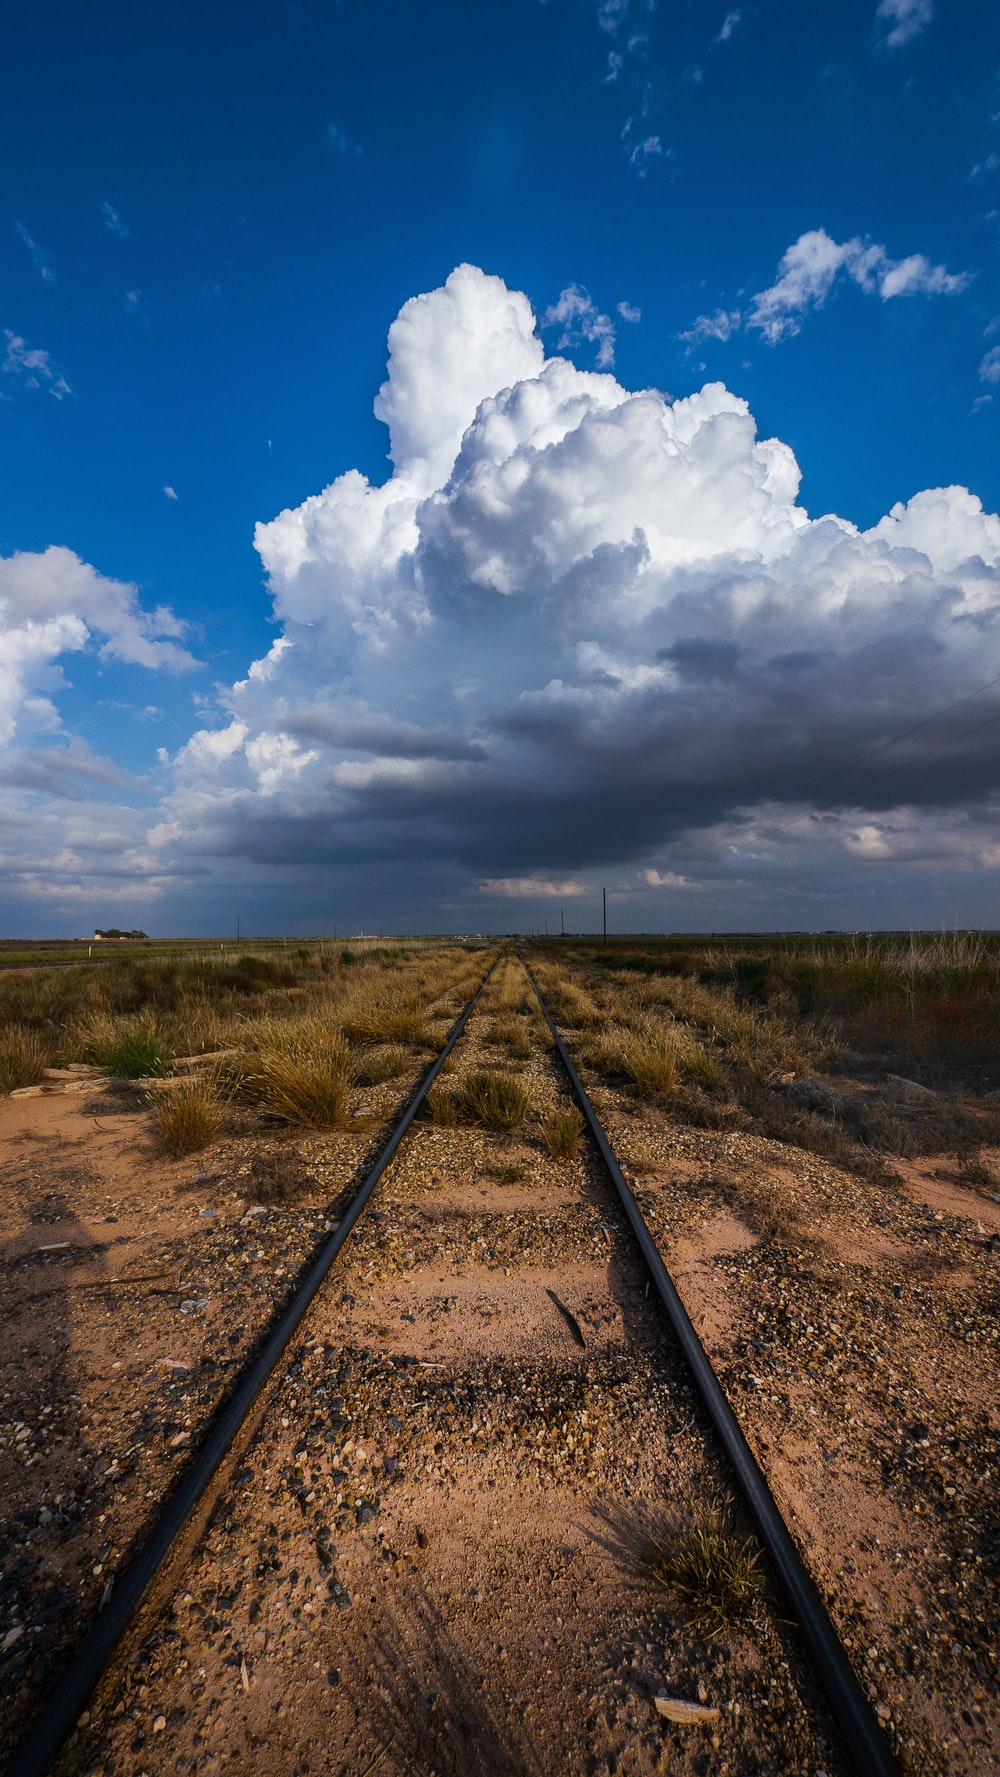 train rail under blue sky and white clouds during daytime